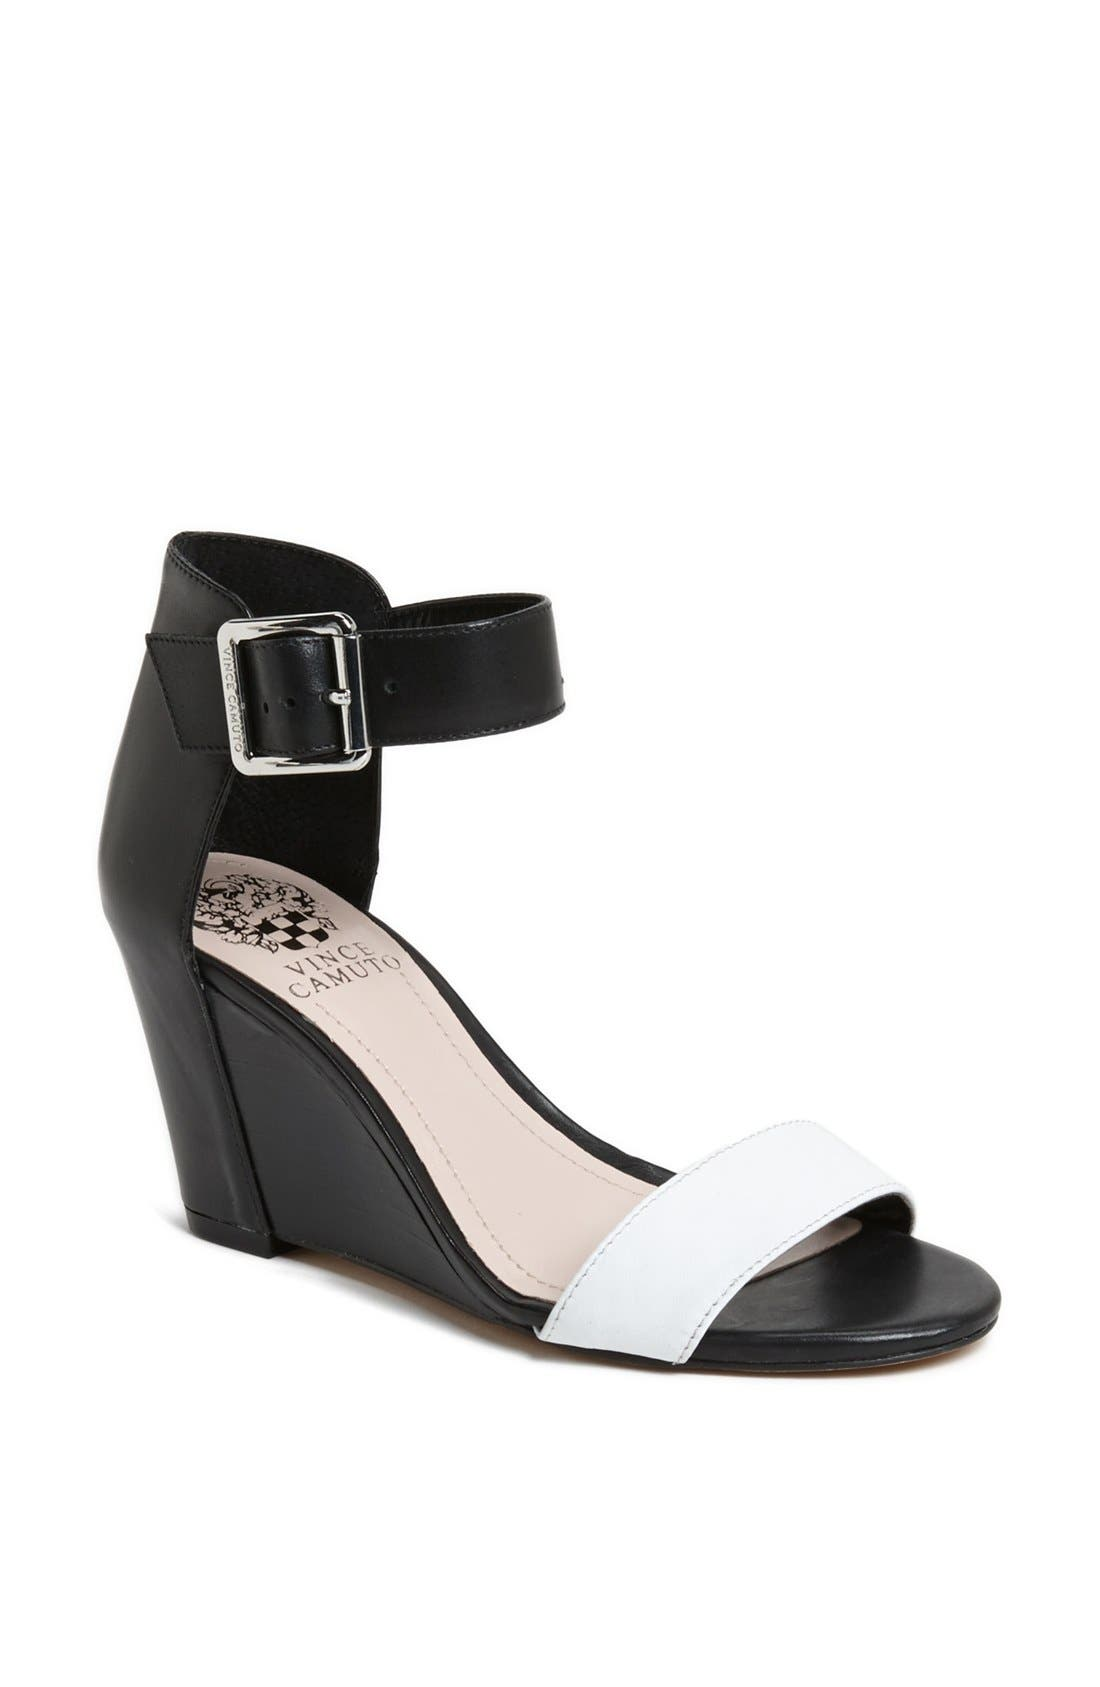 'Luciah' Ankle Strap Wedge Sandal, Main, color, 002